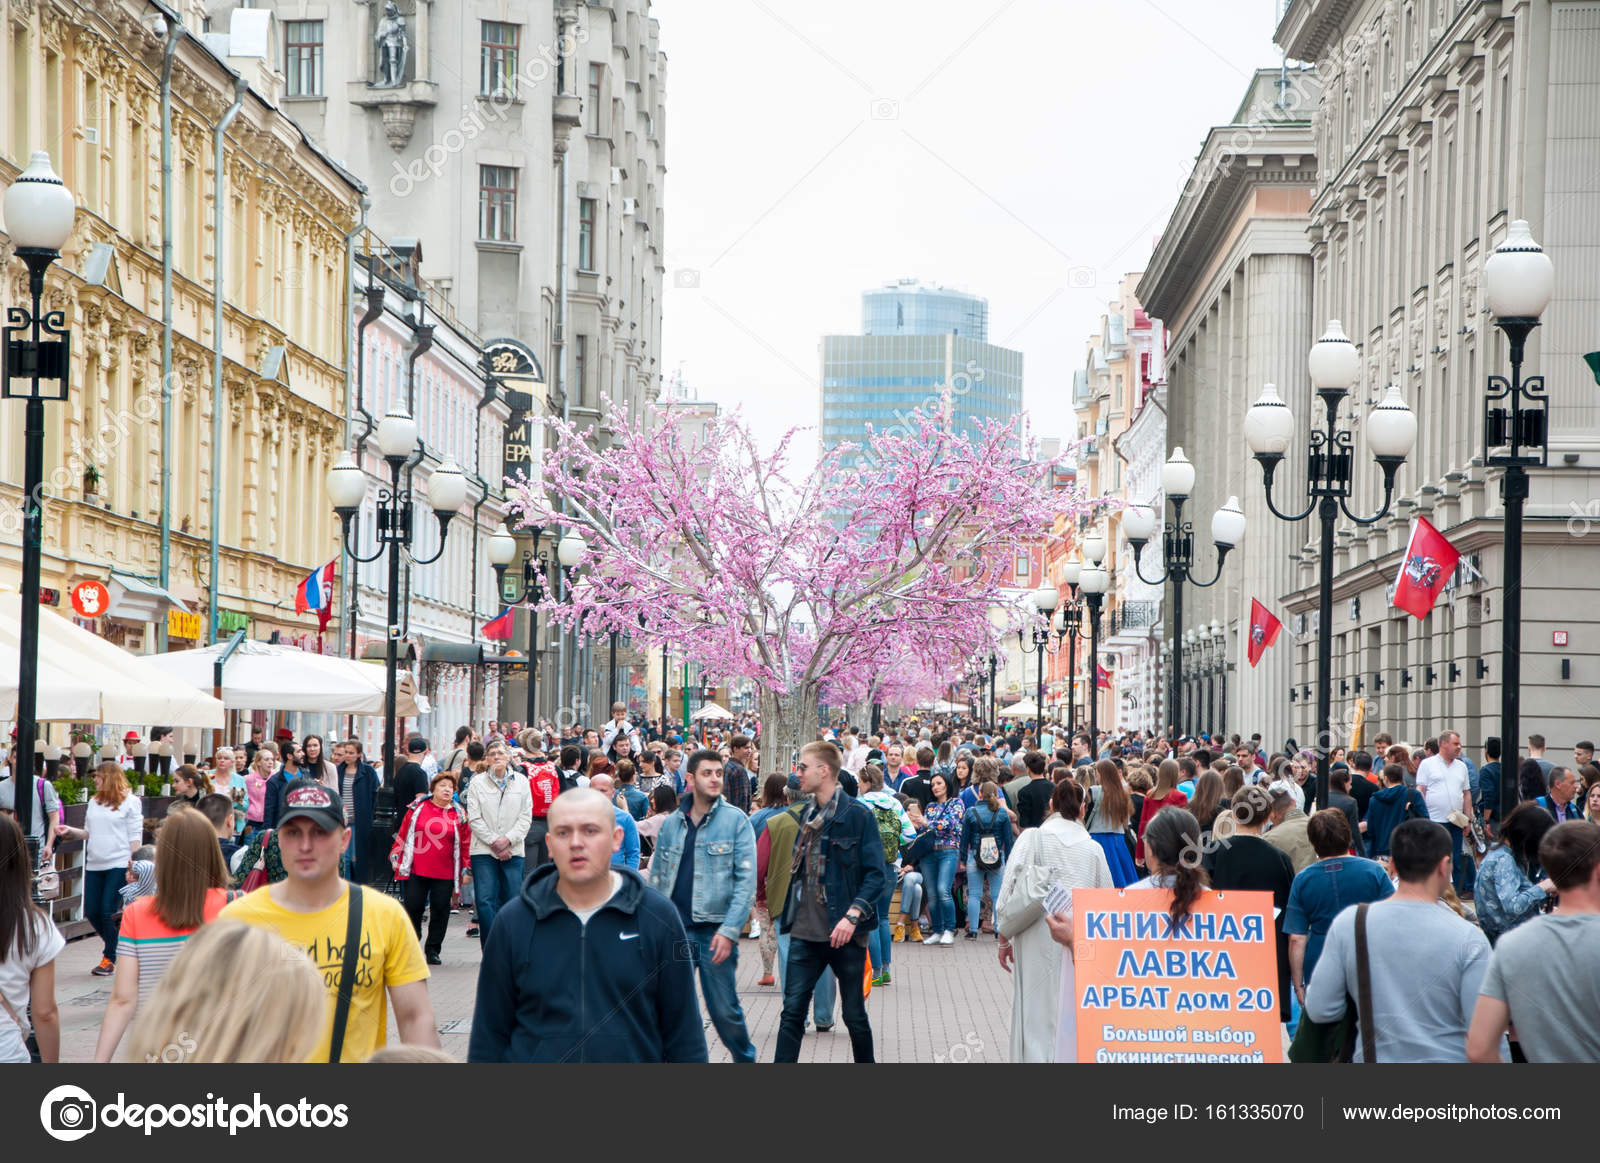 Where can I go on the Arbat old or new. no difference